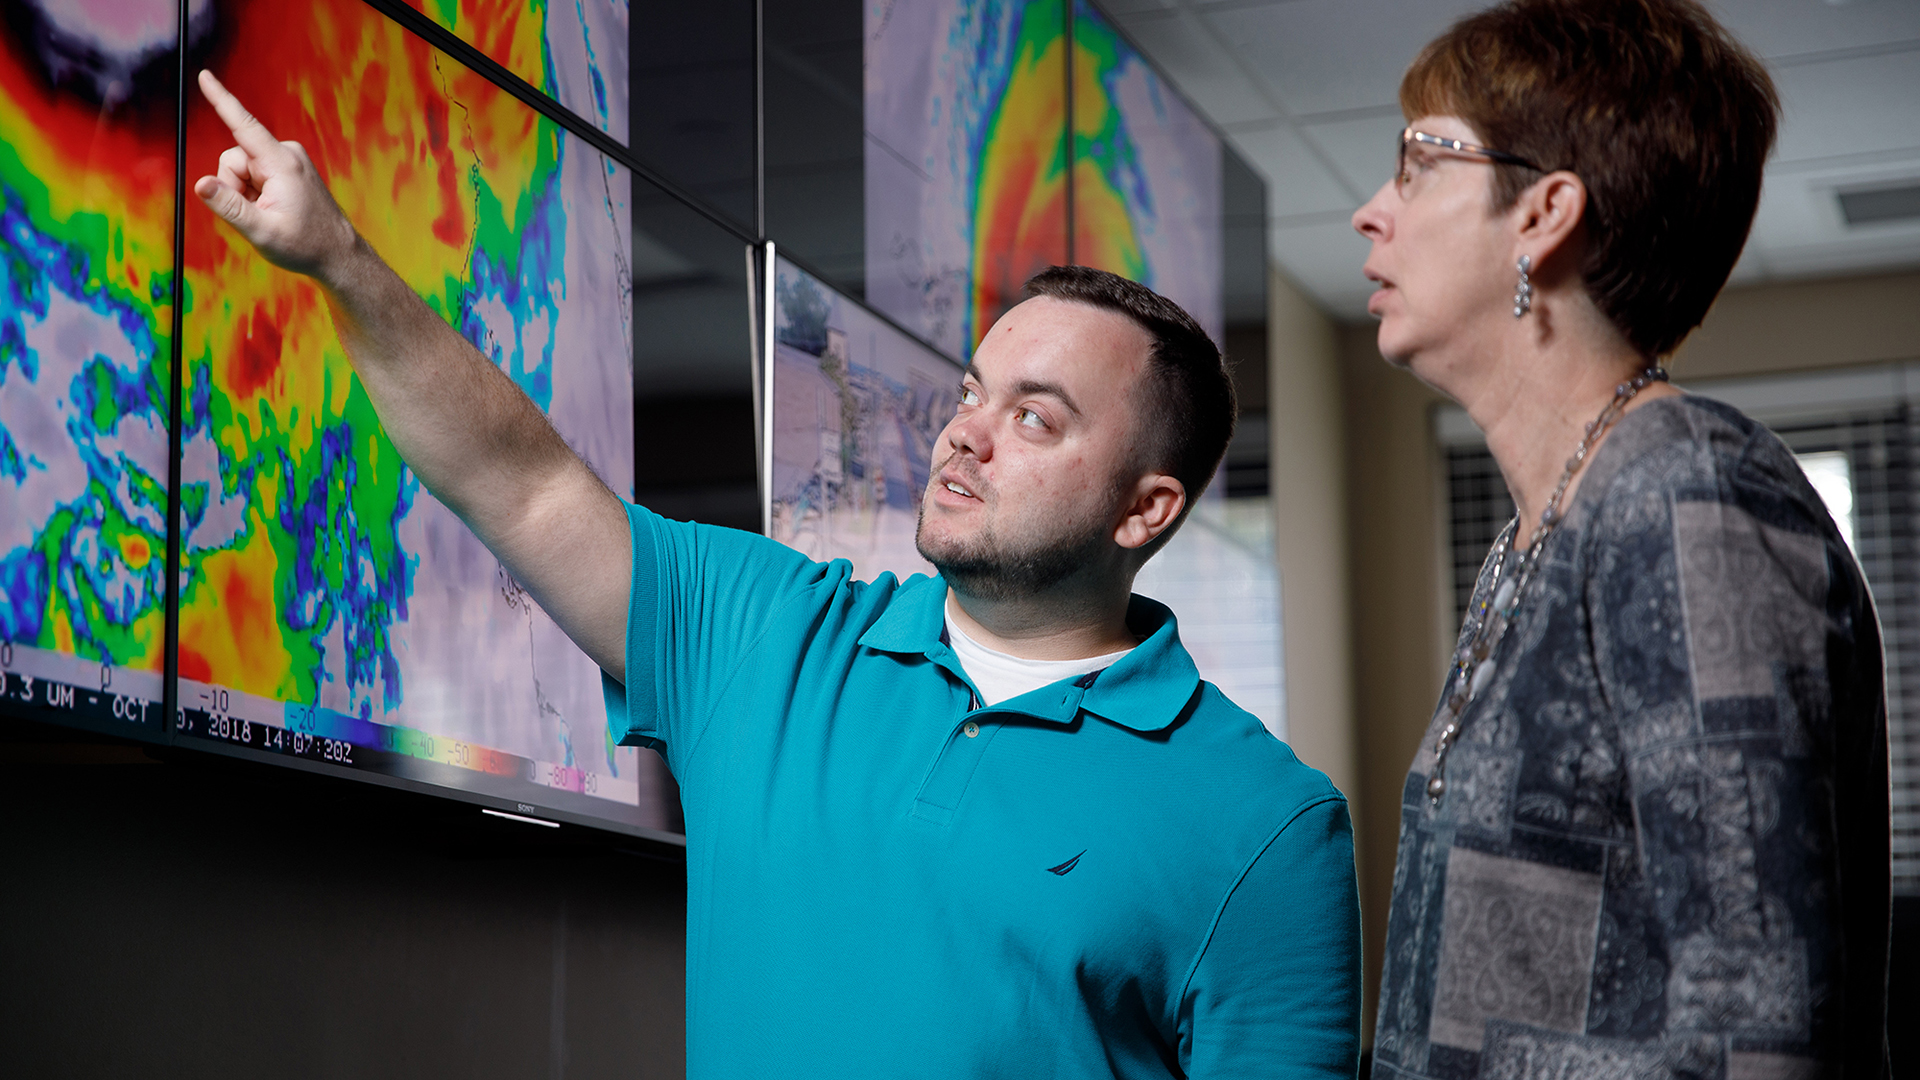 Two people look at a weather radar on screen.